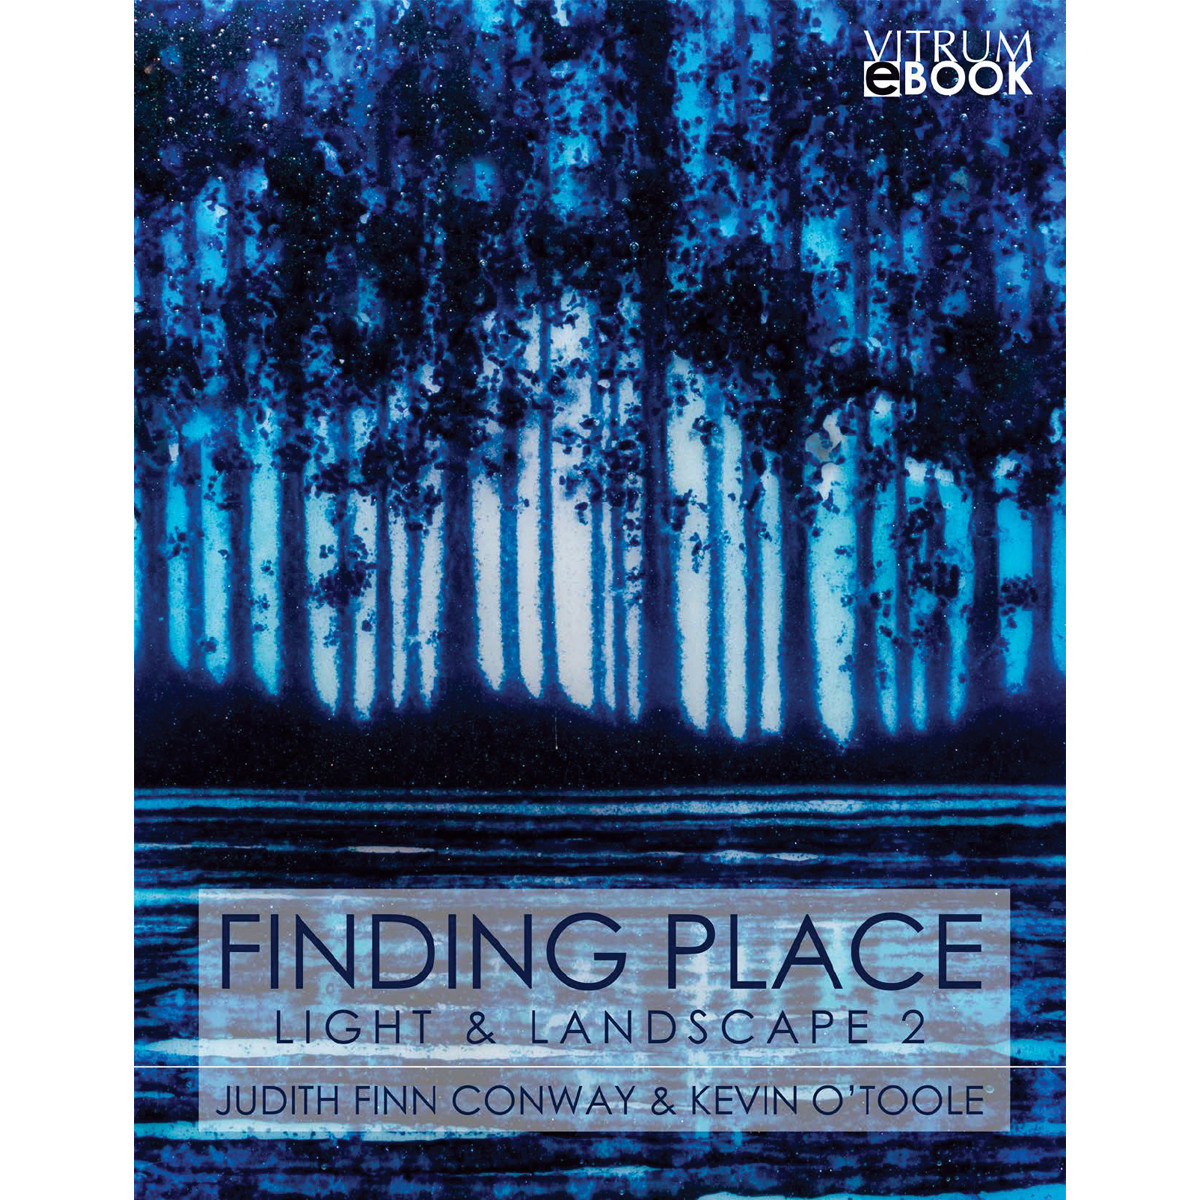 Ebook | Finding Place, Light and Landscape Book 2